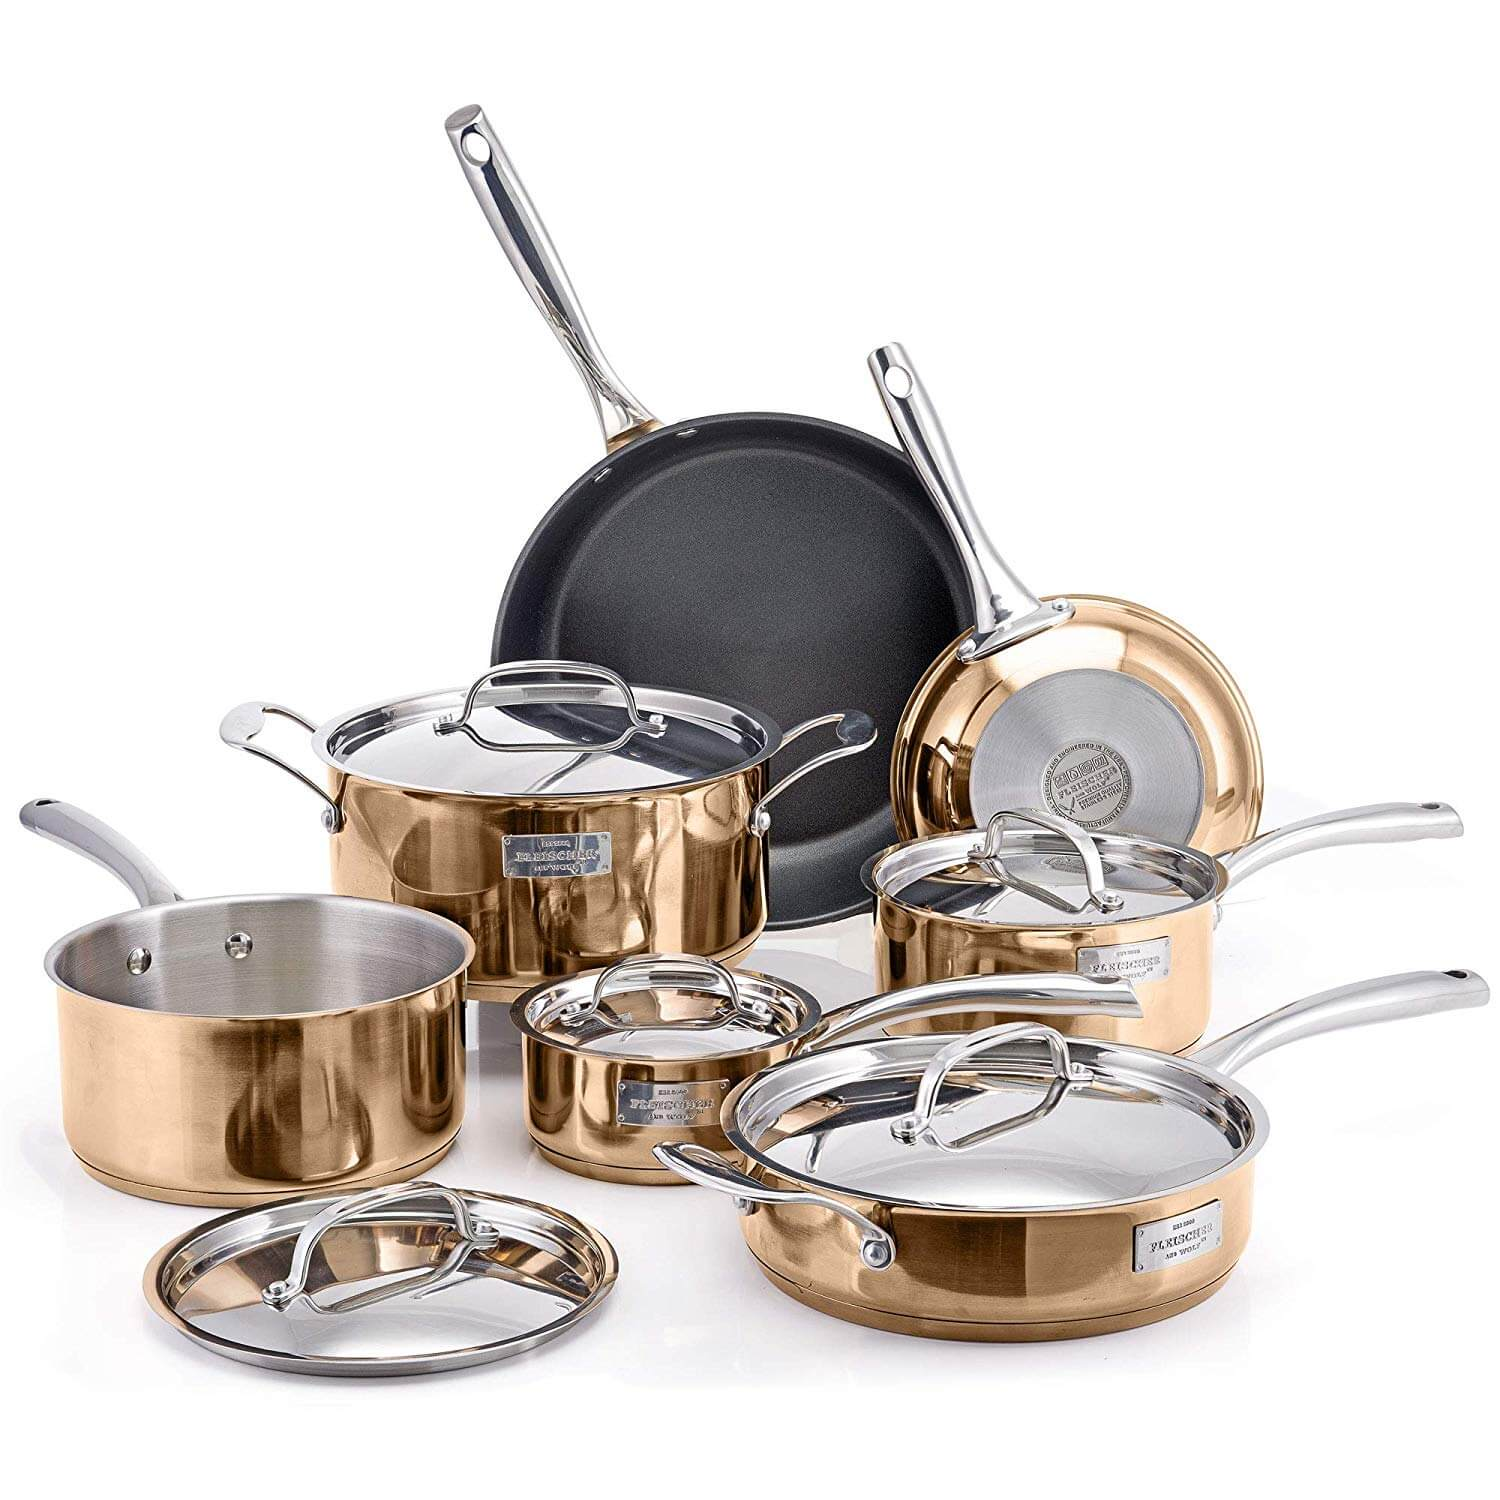 Top 10 Best Aluminum Cookware Sets Review-8